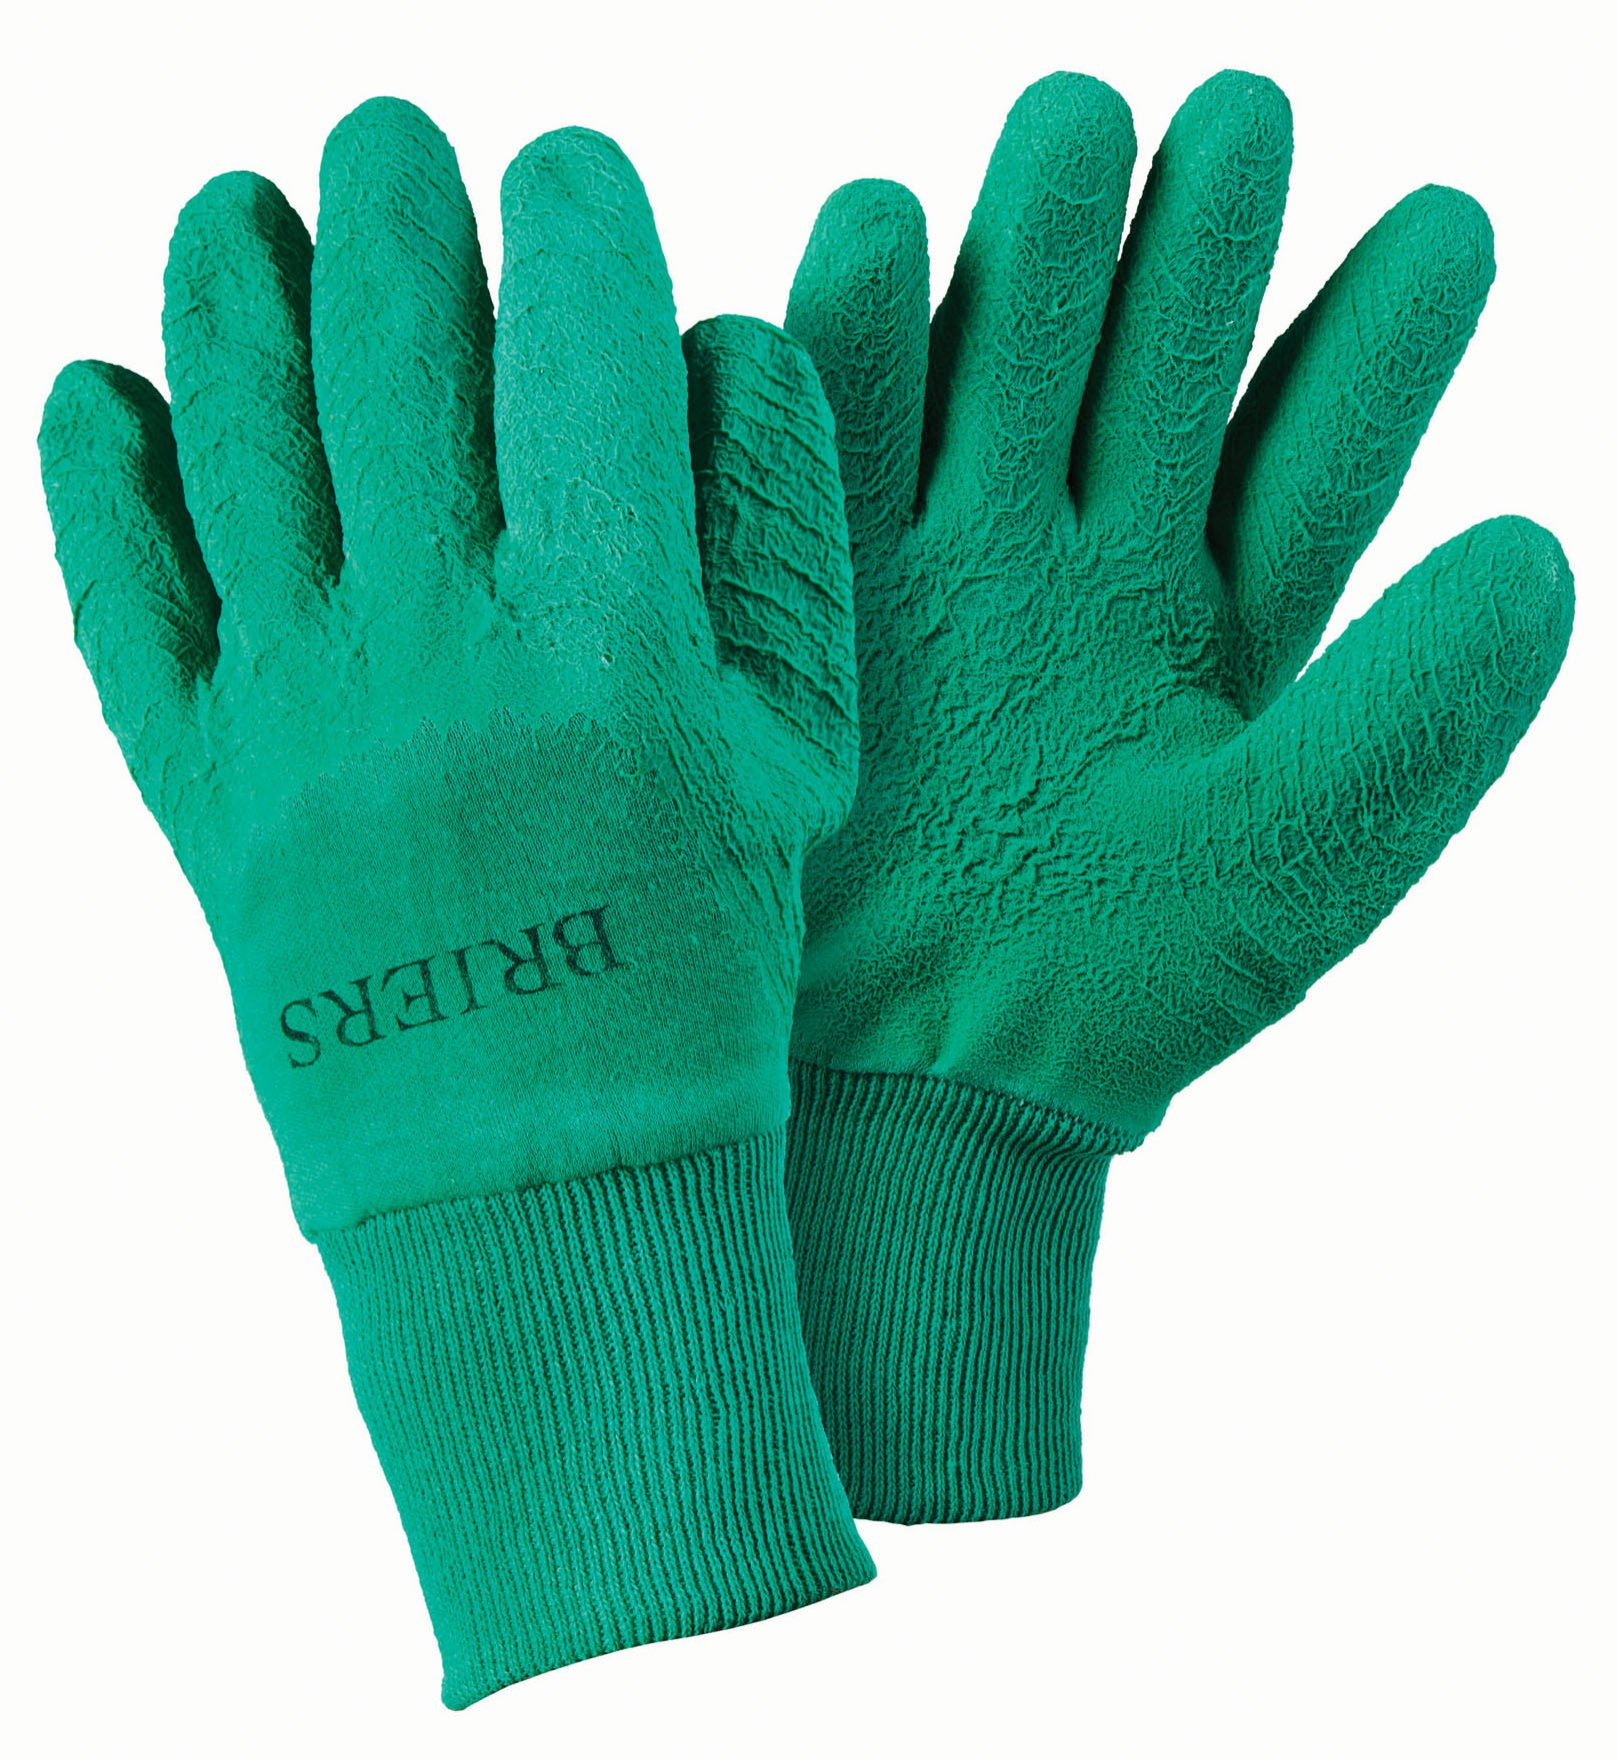 Briers All Rounder Gardening Gloves Small Green At Barnitts Online Store Uk Barnitts